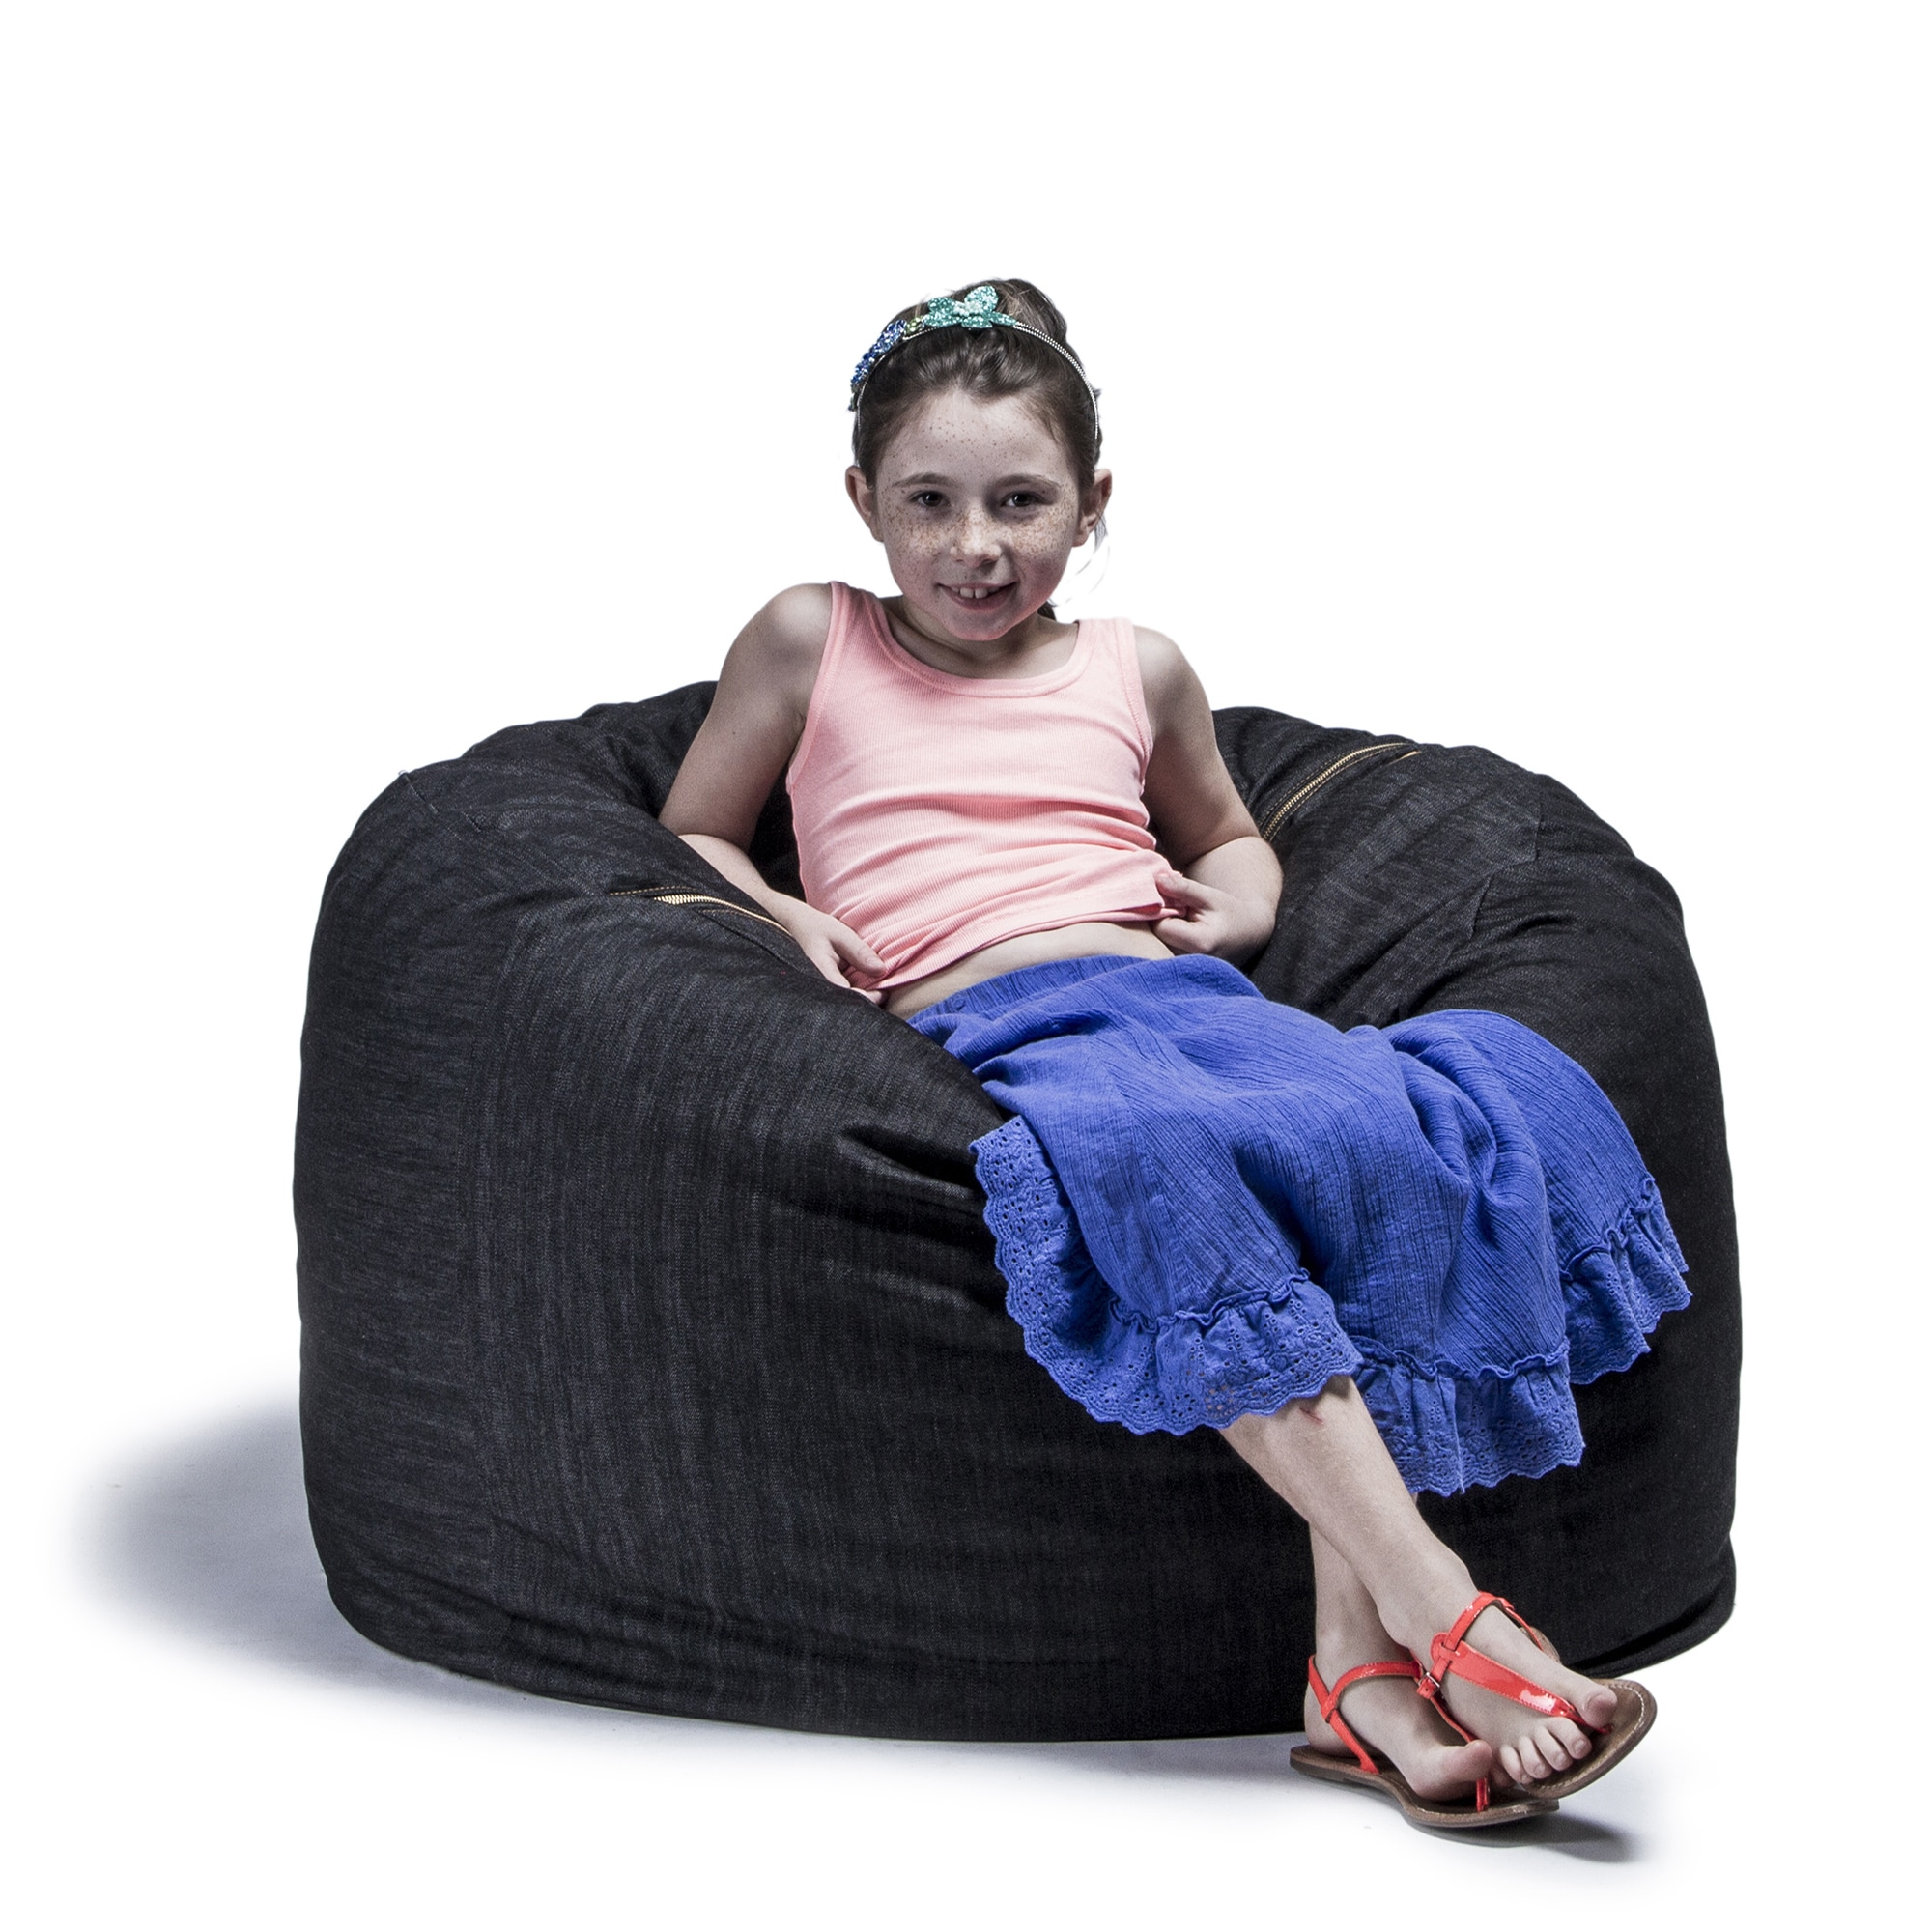 Delightful Jaxx 3u0027 Denim Bean Bag Chair   Free Shipping Today   Overstock   17435532